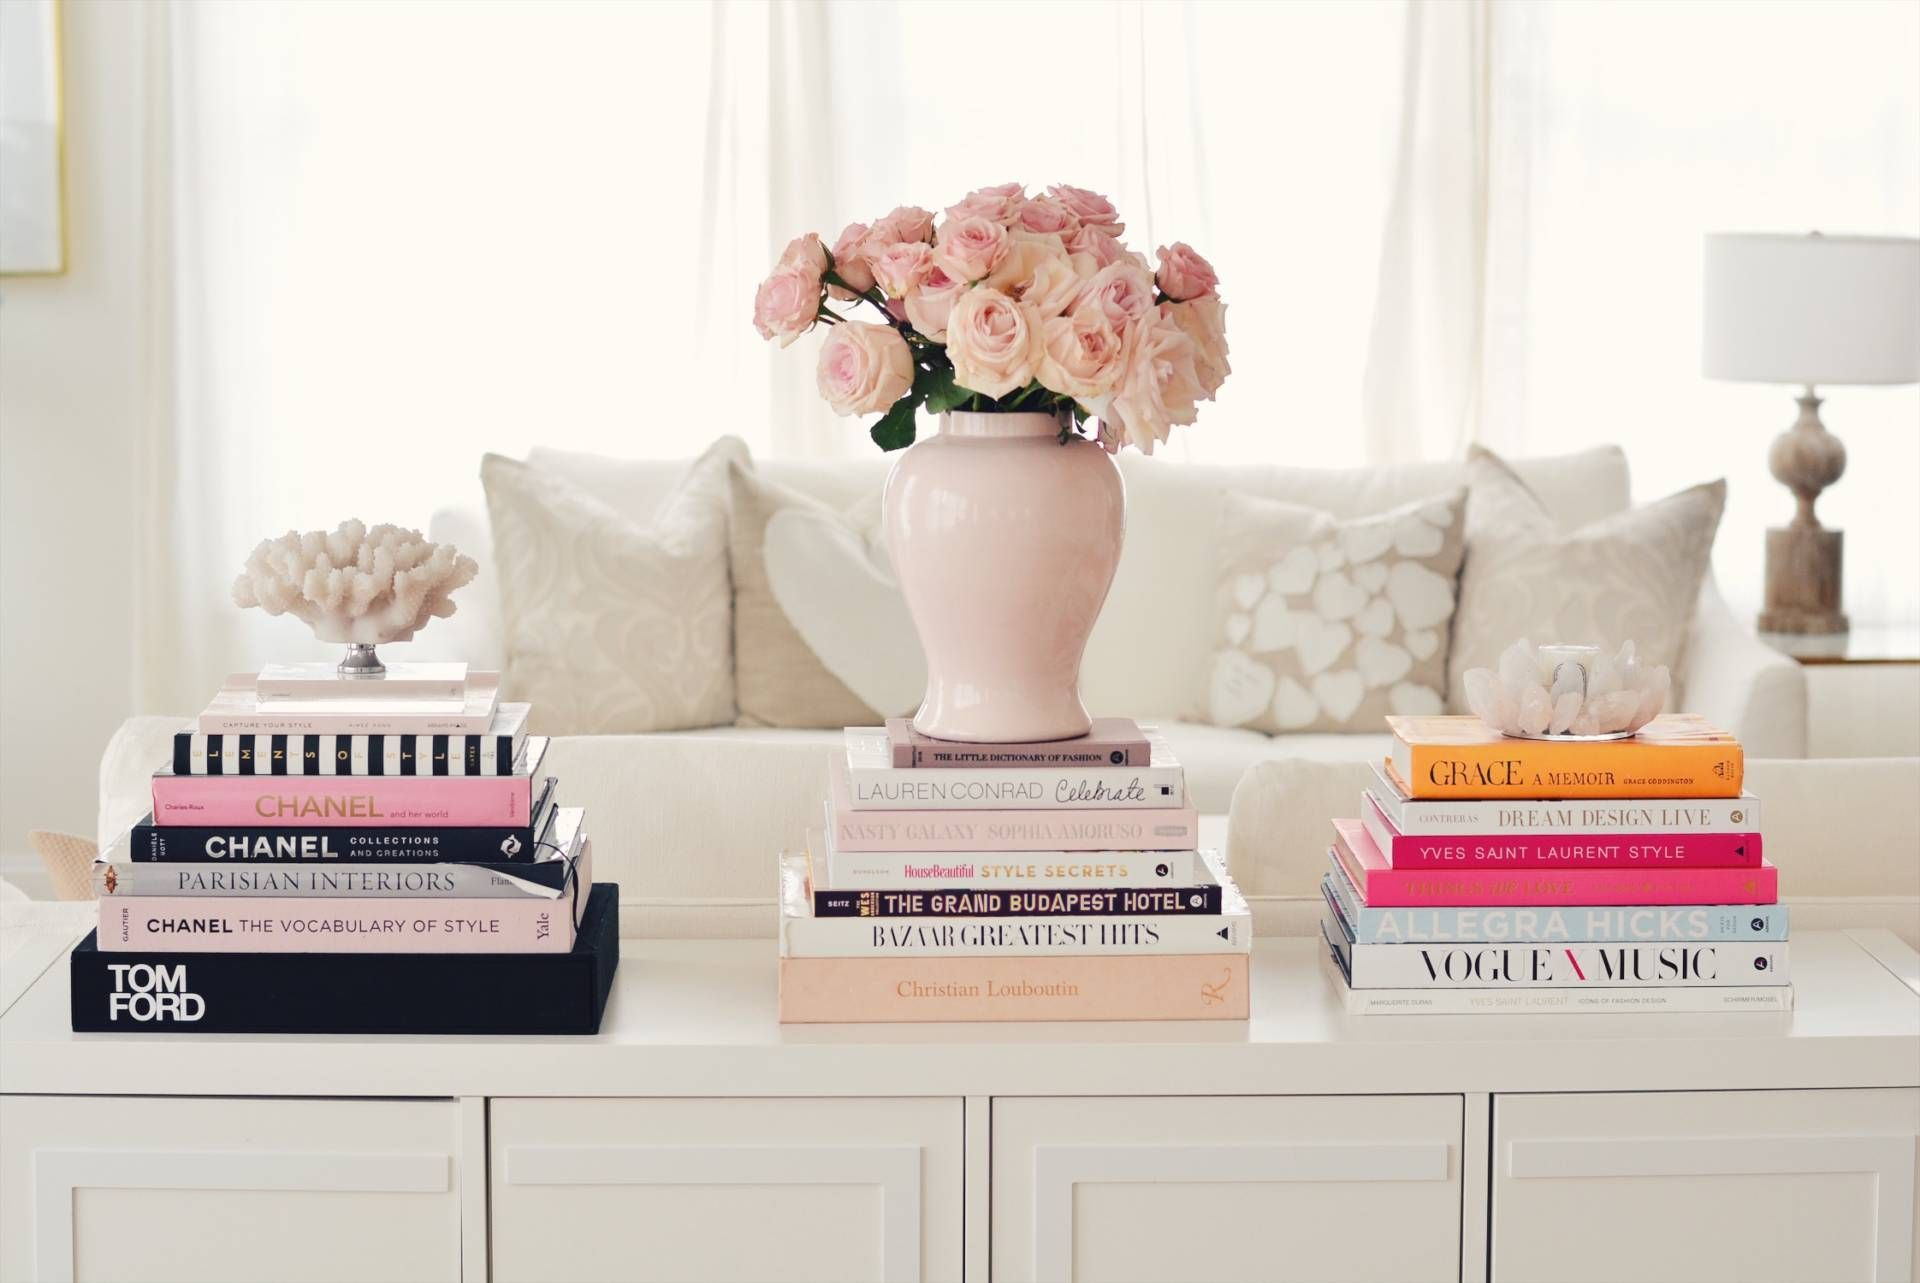 Coffee Table Books Round Up The Pink Dream Fashion Coffee Table Books Cool Coffee Tables Coffee Table Books Decor